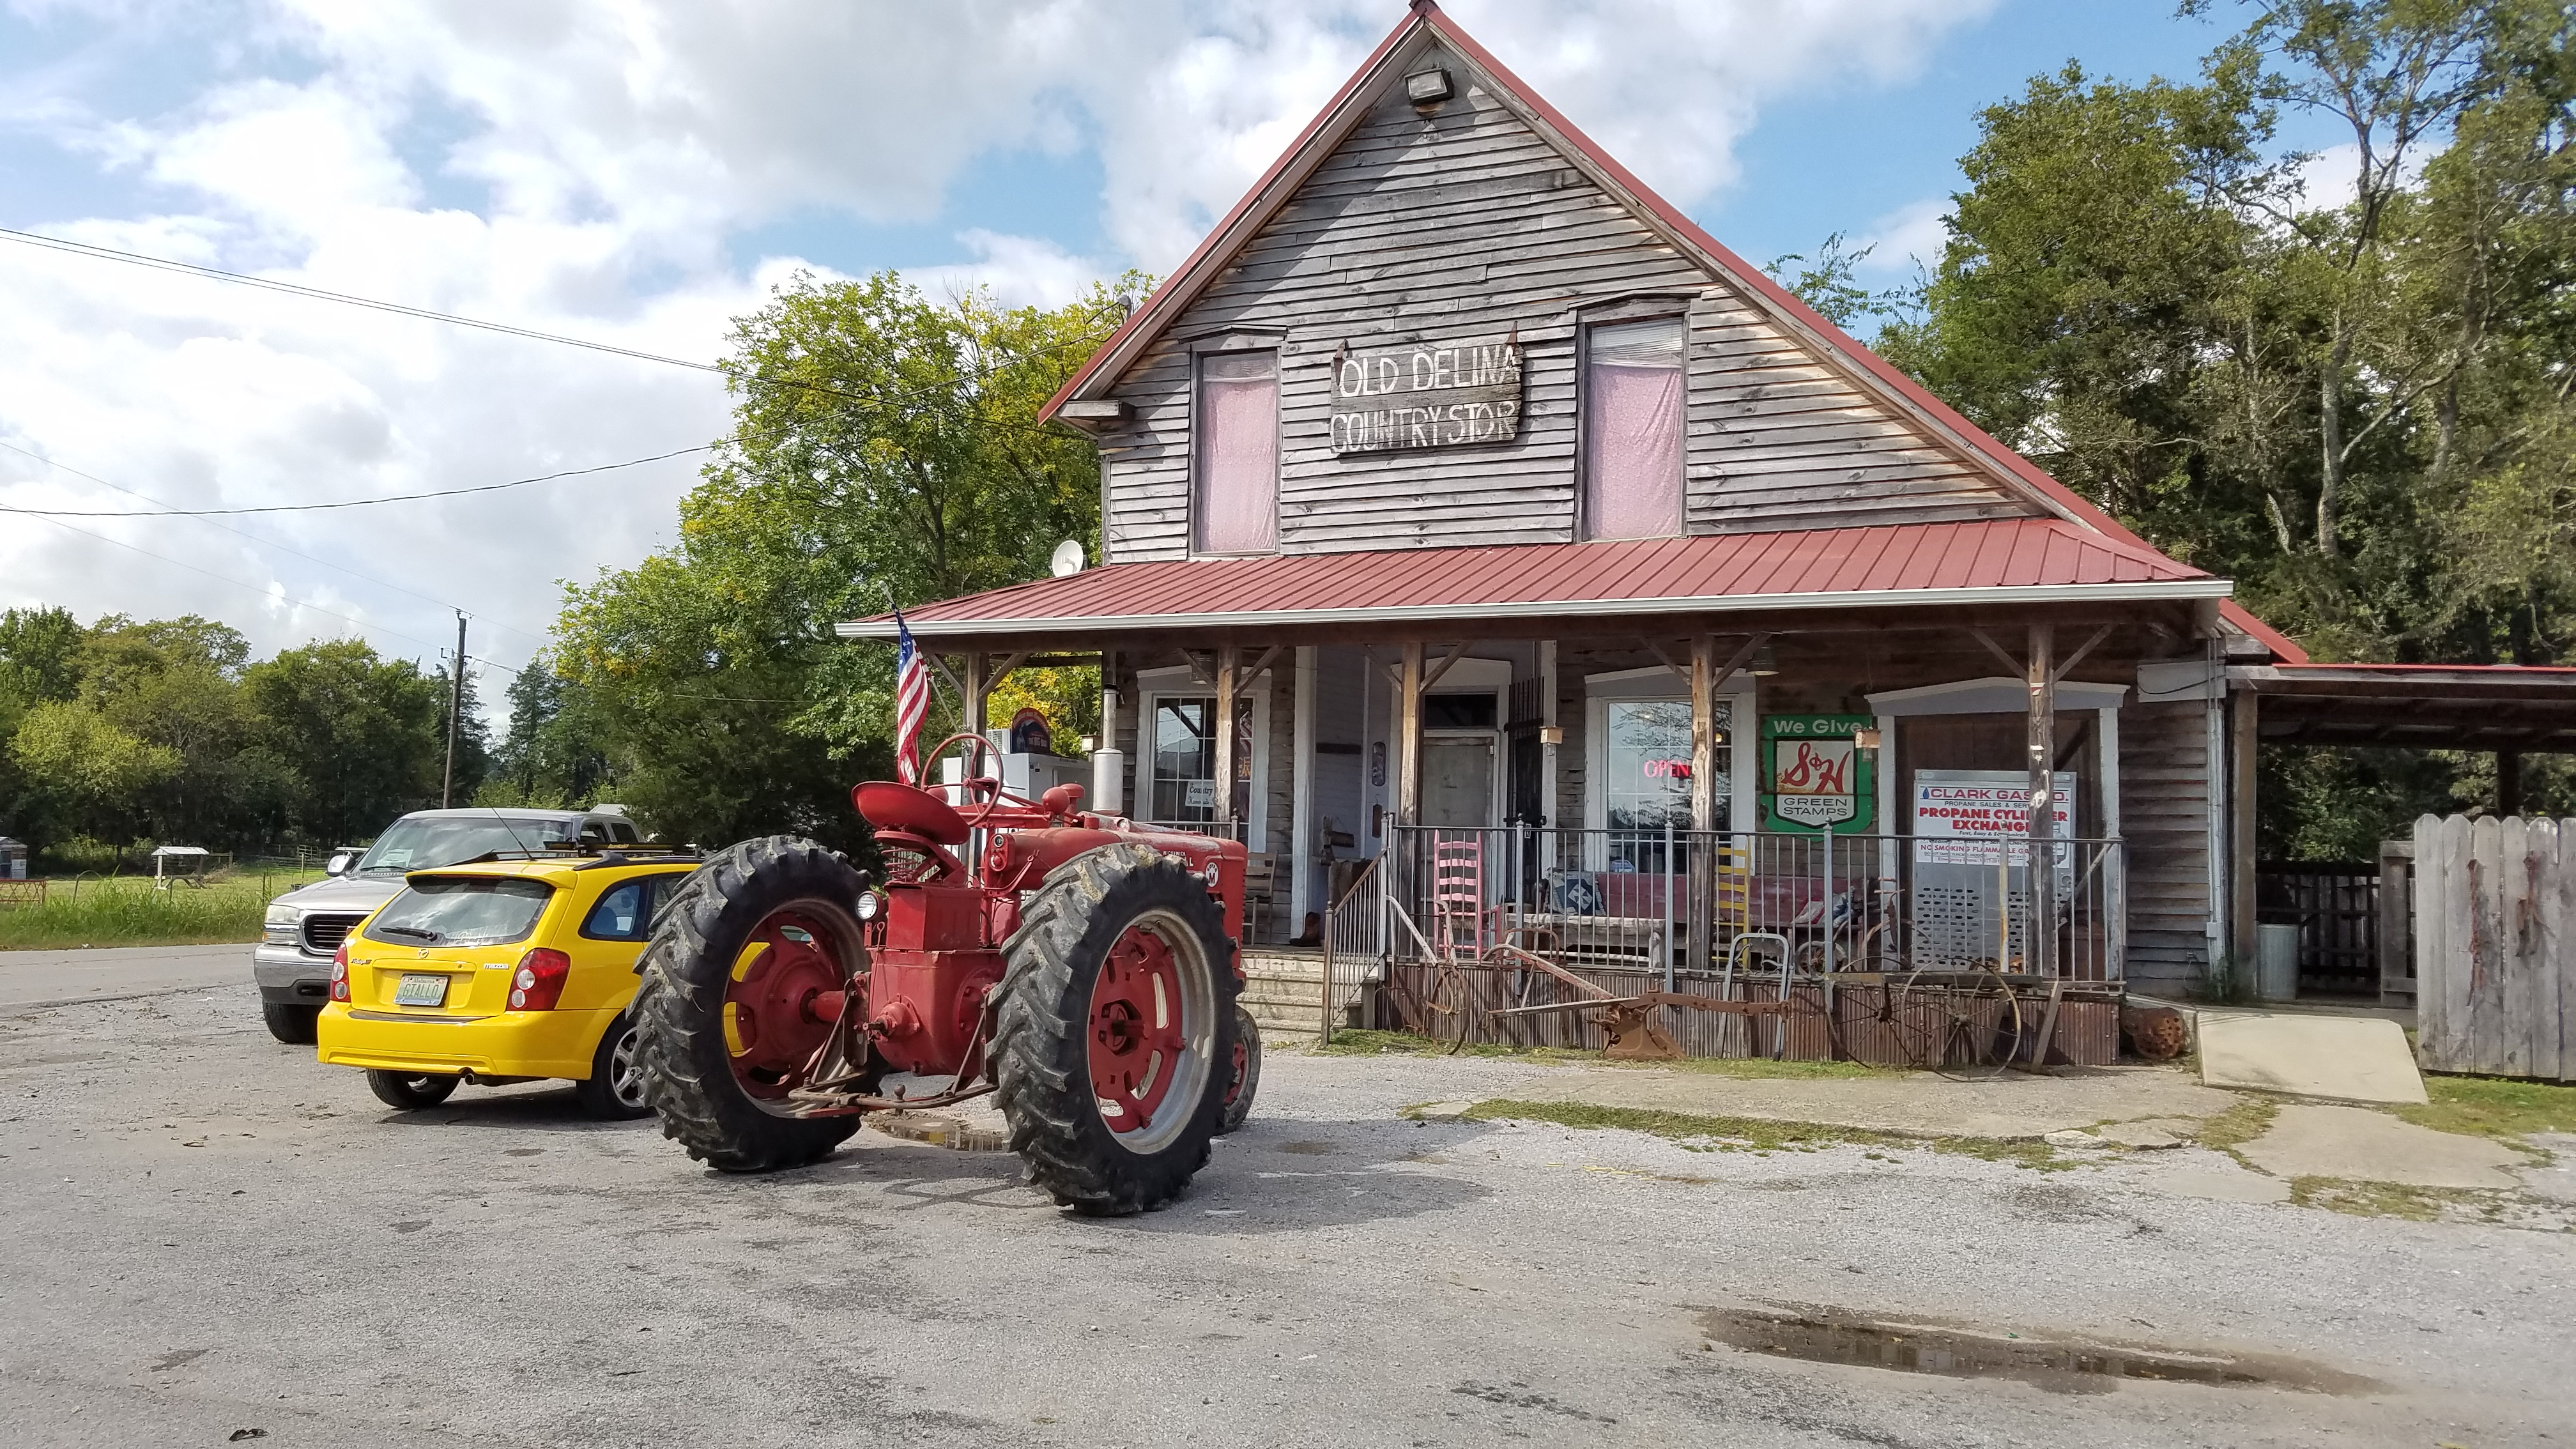 Rest Stop 3 - Delina General Store 03